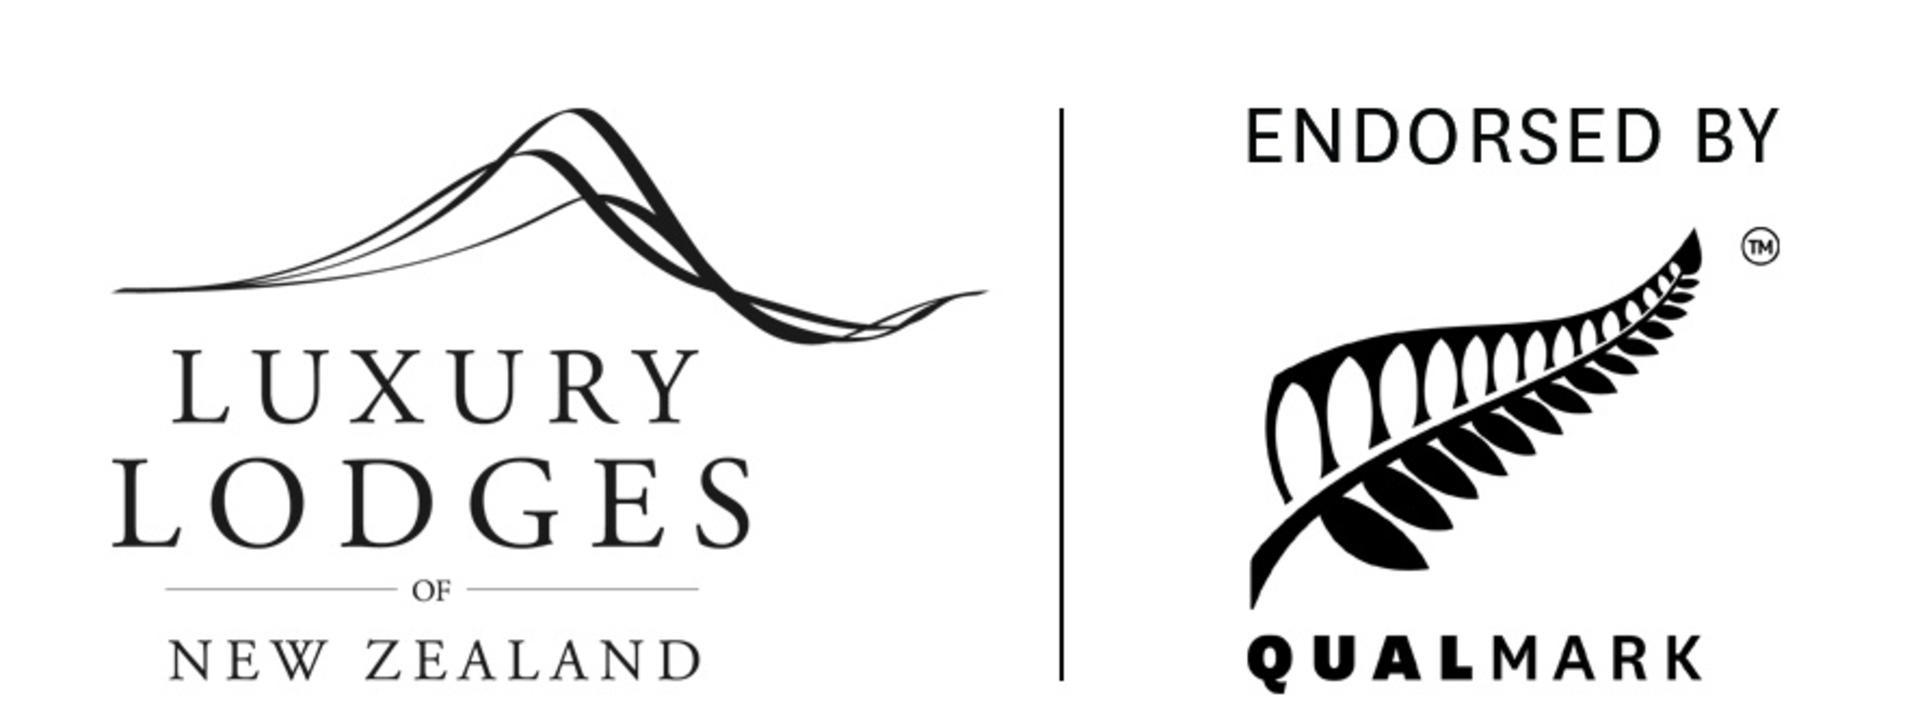 Logo: Luxury Lodges of New Zealand